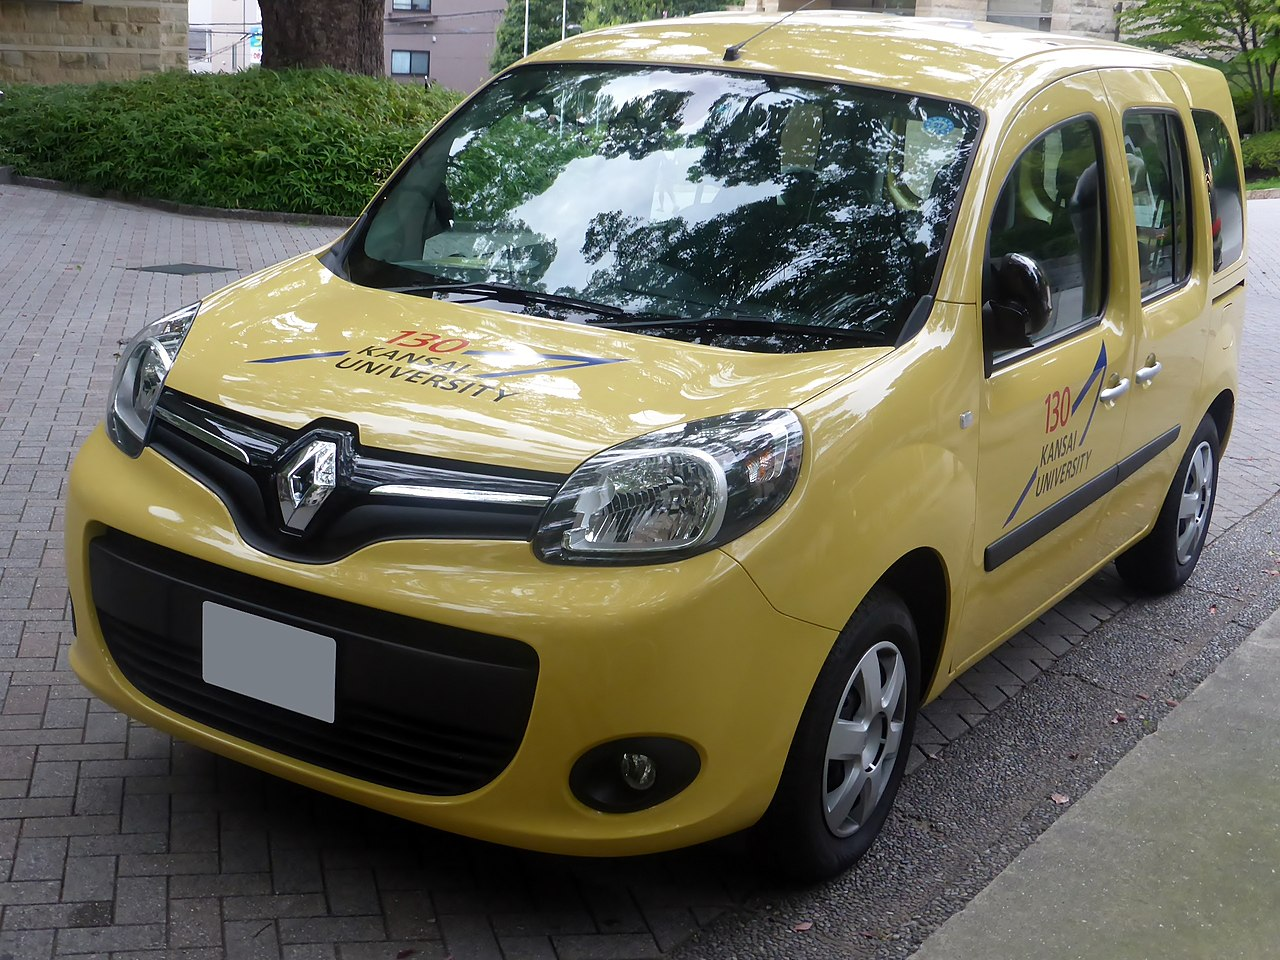 file the frontview of renault kangoo ii zen used as a business car of kansai university jpg. Black Bedroom Furniture Sets. Home Design Ideas